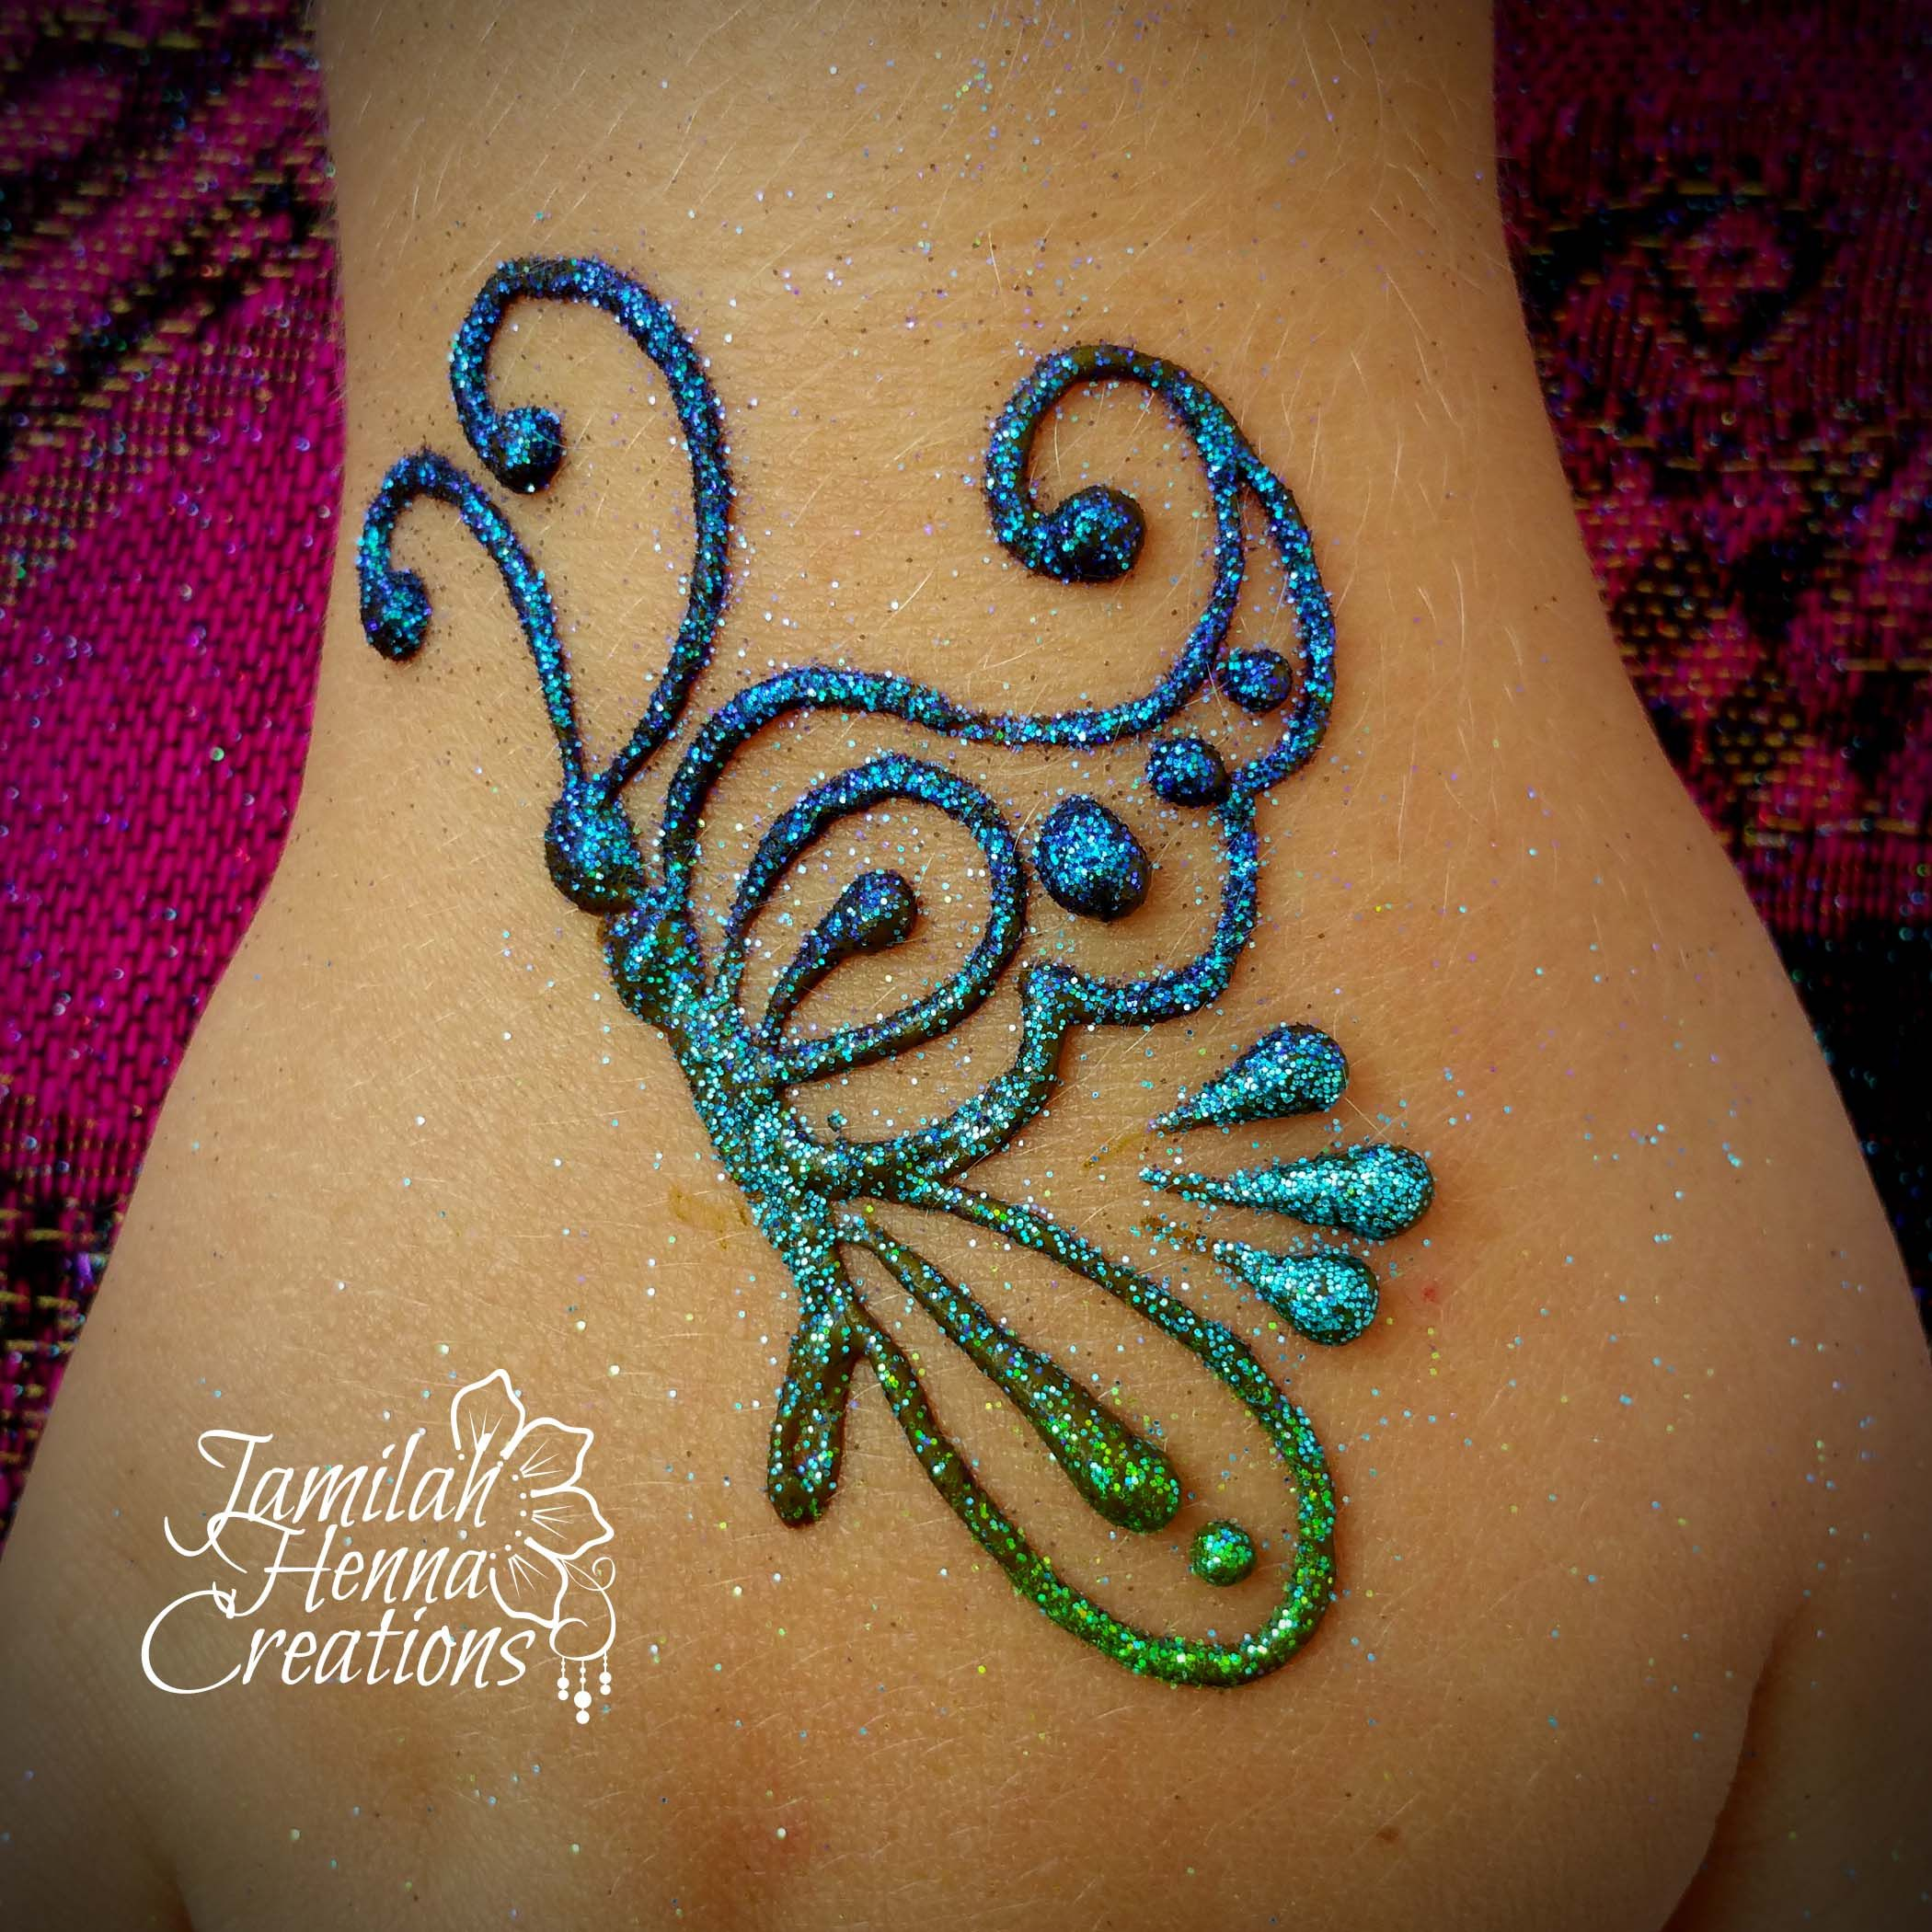 Simple Henna Tattoo Designs For Feet: Butterfly Henna Www.JamilahHennaCreations.com